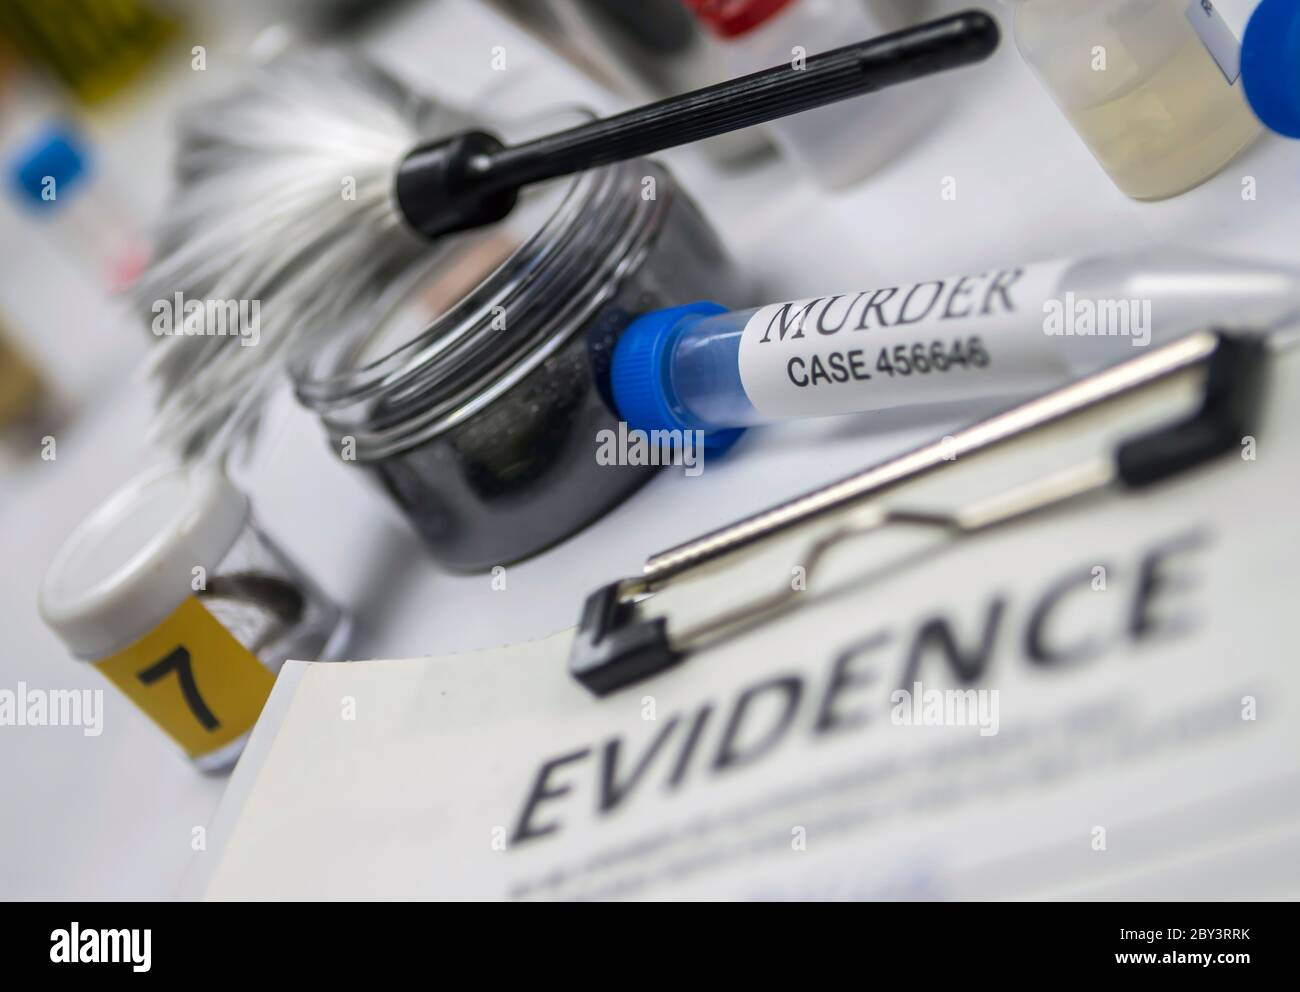 Various Laboratory Tests Forensic Equipment Conceptual Image Stock Photo Alamy